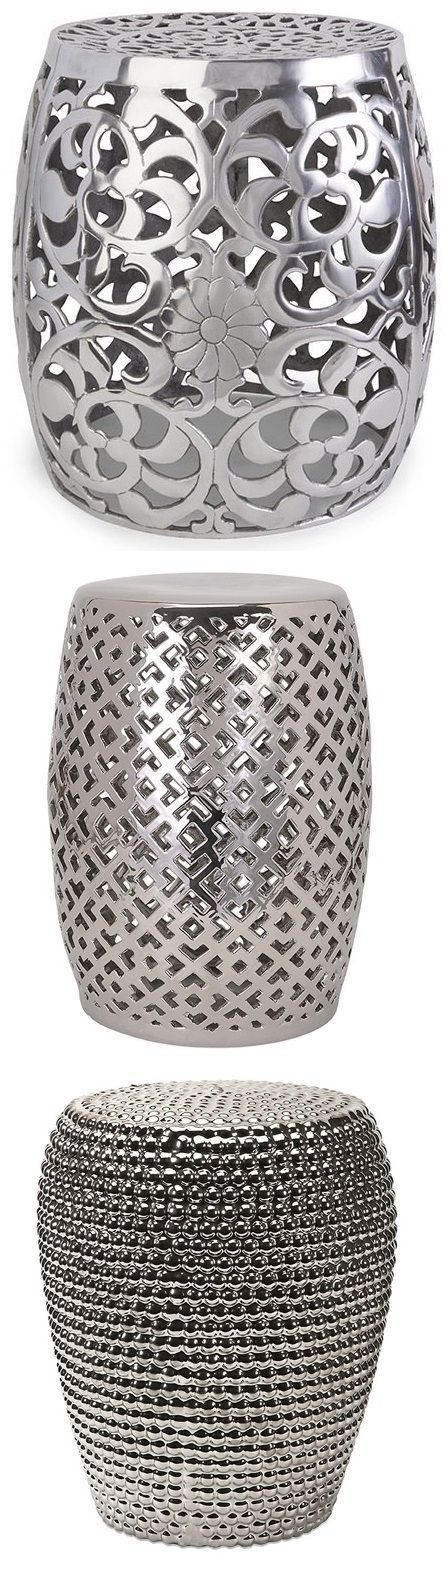 Silver Garden Stools .instyle-decor.com/silver-garden-stools. Ceramic ...  sc 1 st  Pinterest & Best 25+ Ceramic stool ideas on Pinterest | Built in bathtub ... islam-shia.org